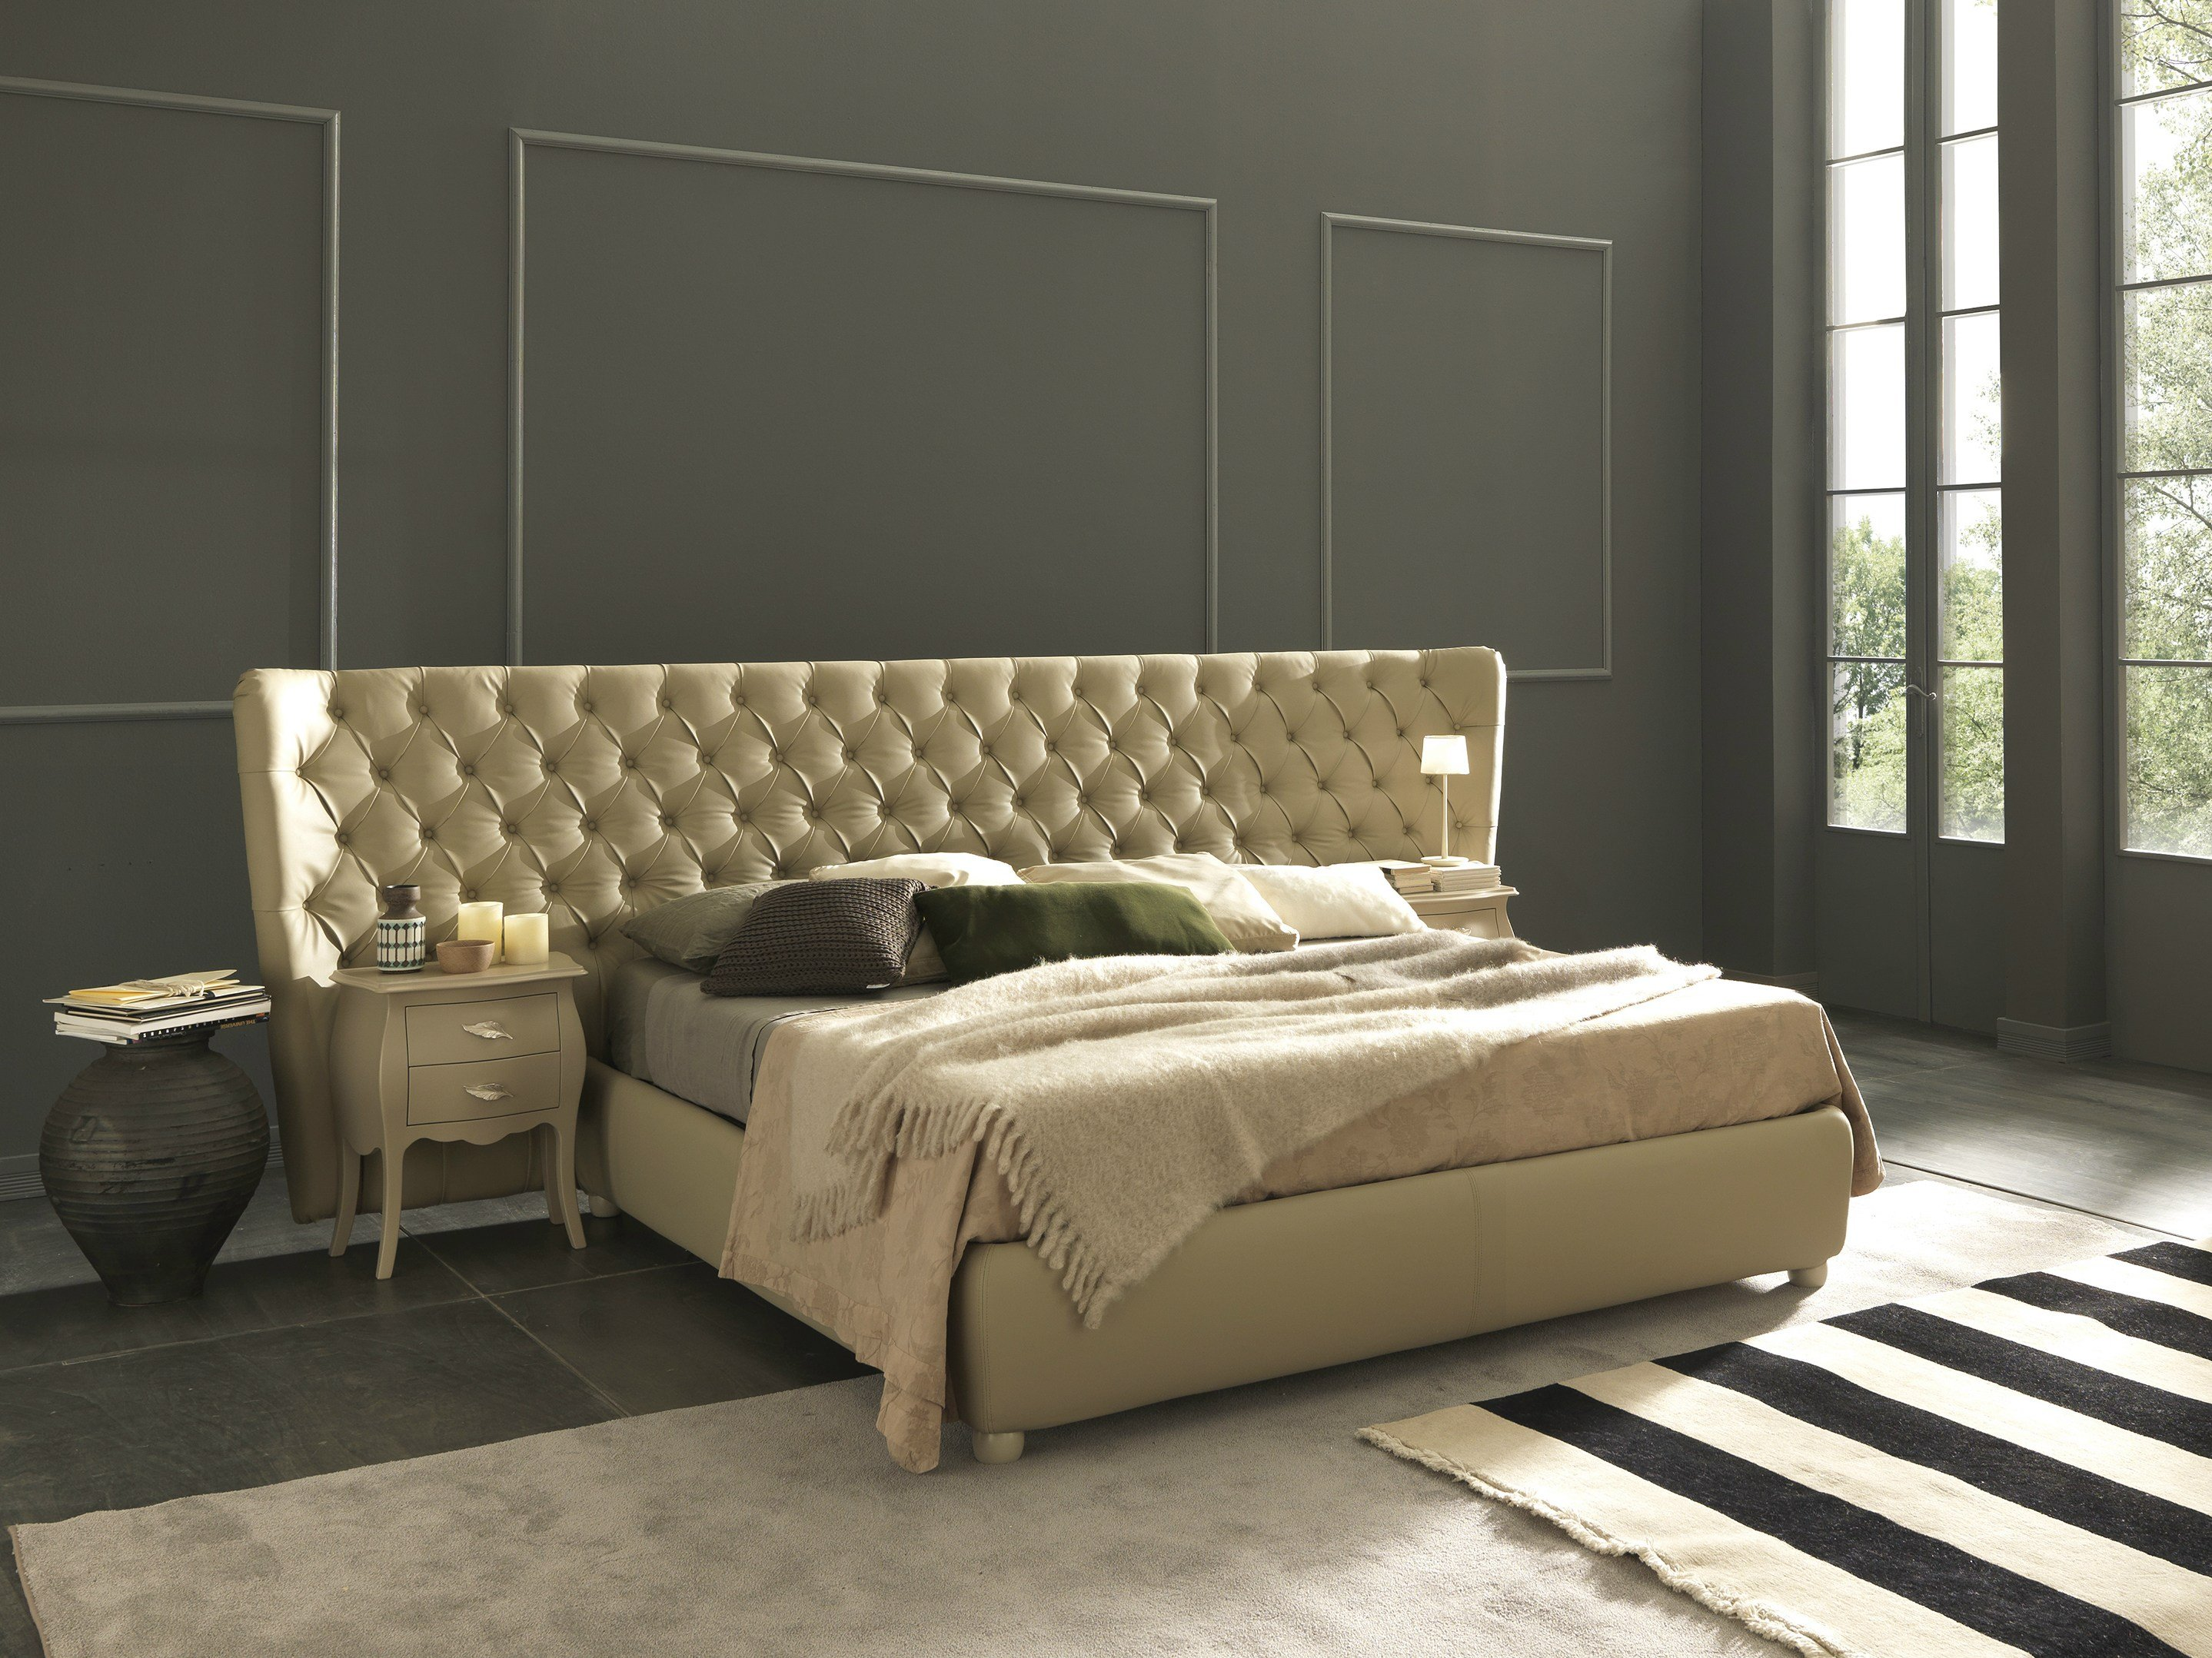 double bed with tufted headboard selene extra large by. Black Bedroom Furniture Sets. Home Design Ideas